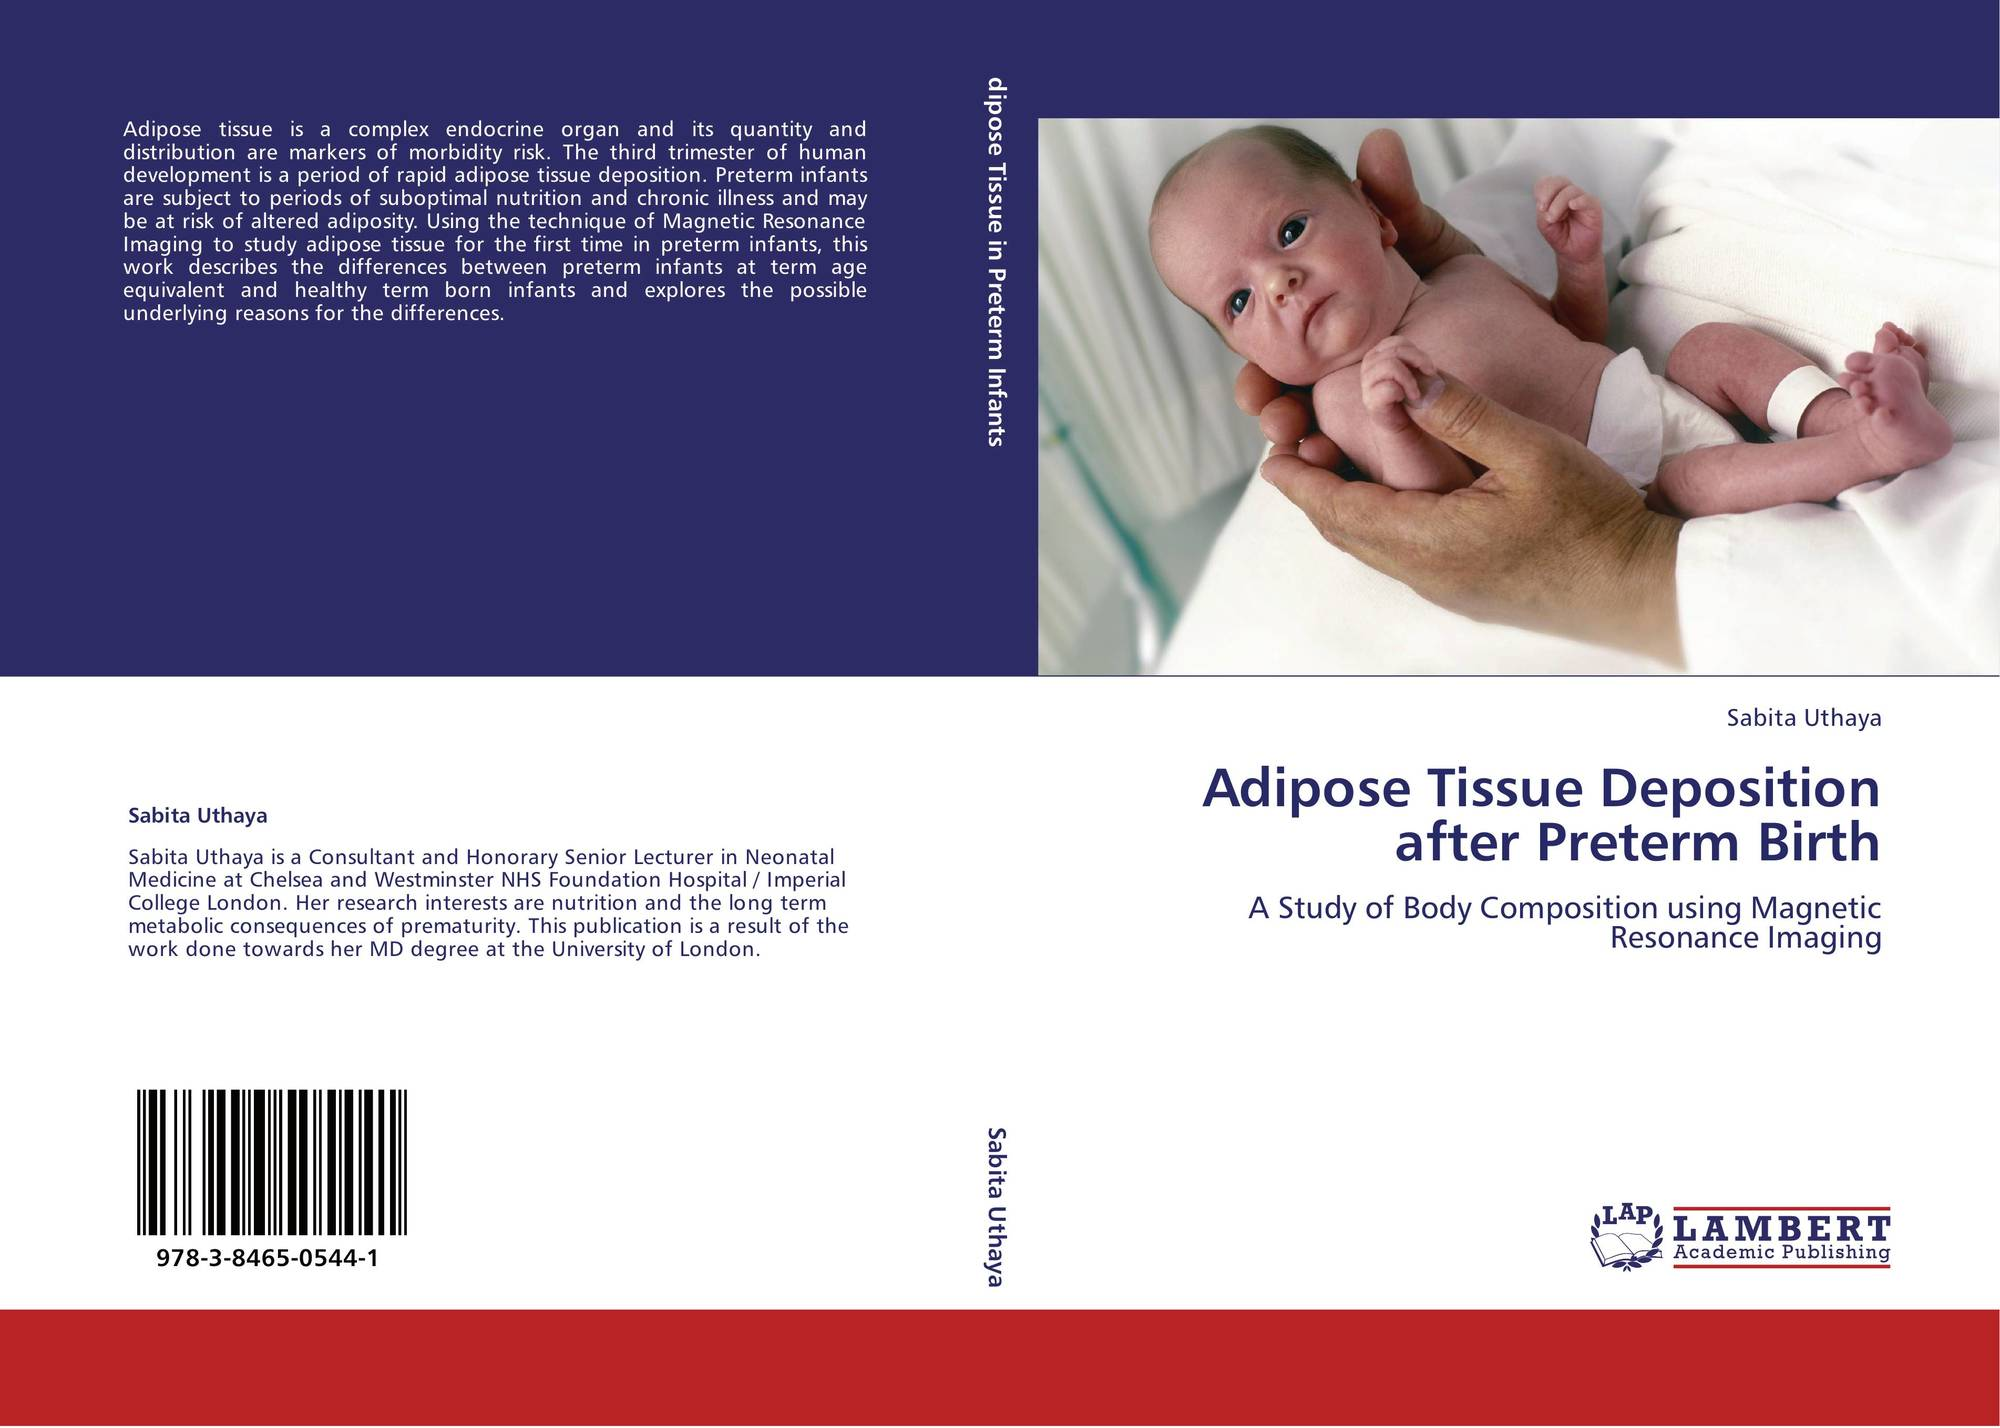 a research study on preterm birth In the study, published thursday, may 24, 2018, in the journal of perinatology, the researchers built a comprehensive test that would capture both spontaneous preterm births, which occurs when the amniotic sac breaks or contractions begin spontaneously, and indicated preterm birth, in which a physician induces labor or performs a cesarean.